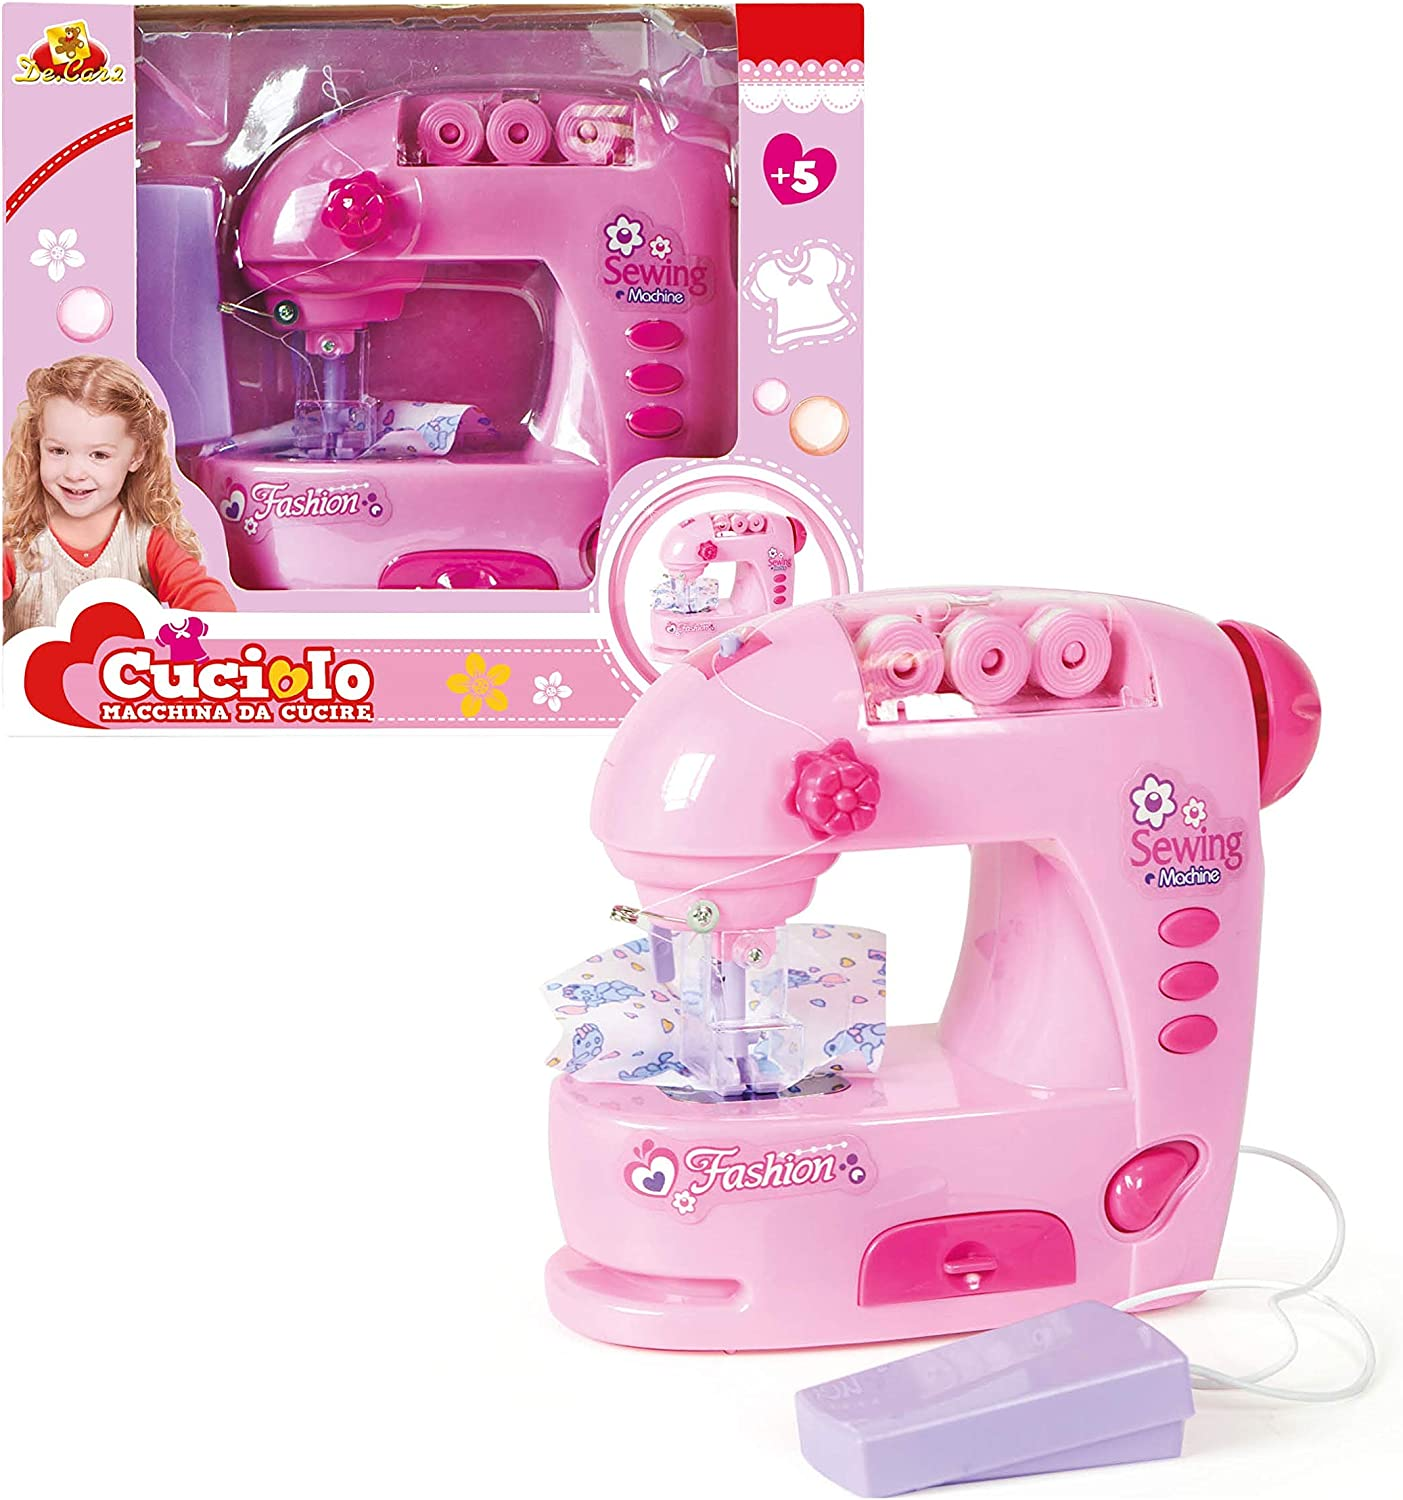 Máquina de Coser Juguete Toy Sewing Machine Set for Children ...